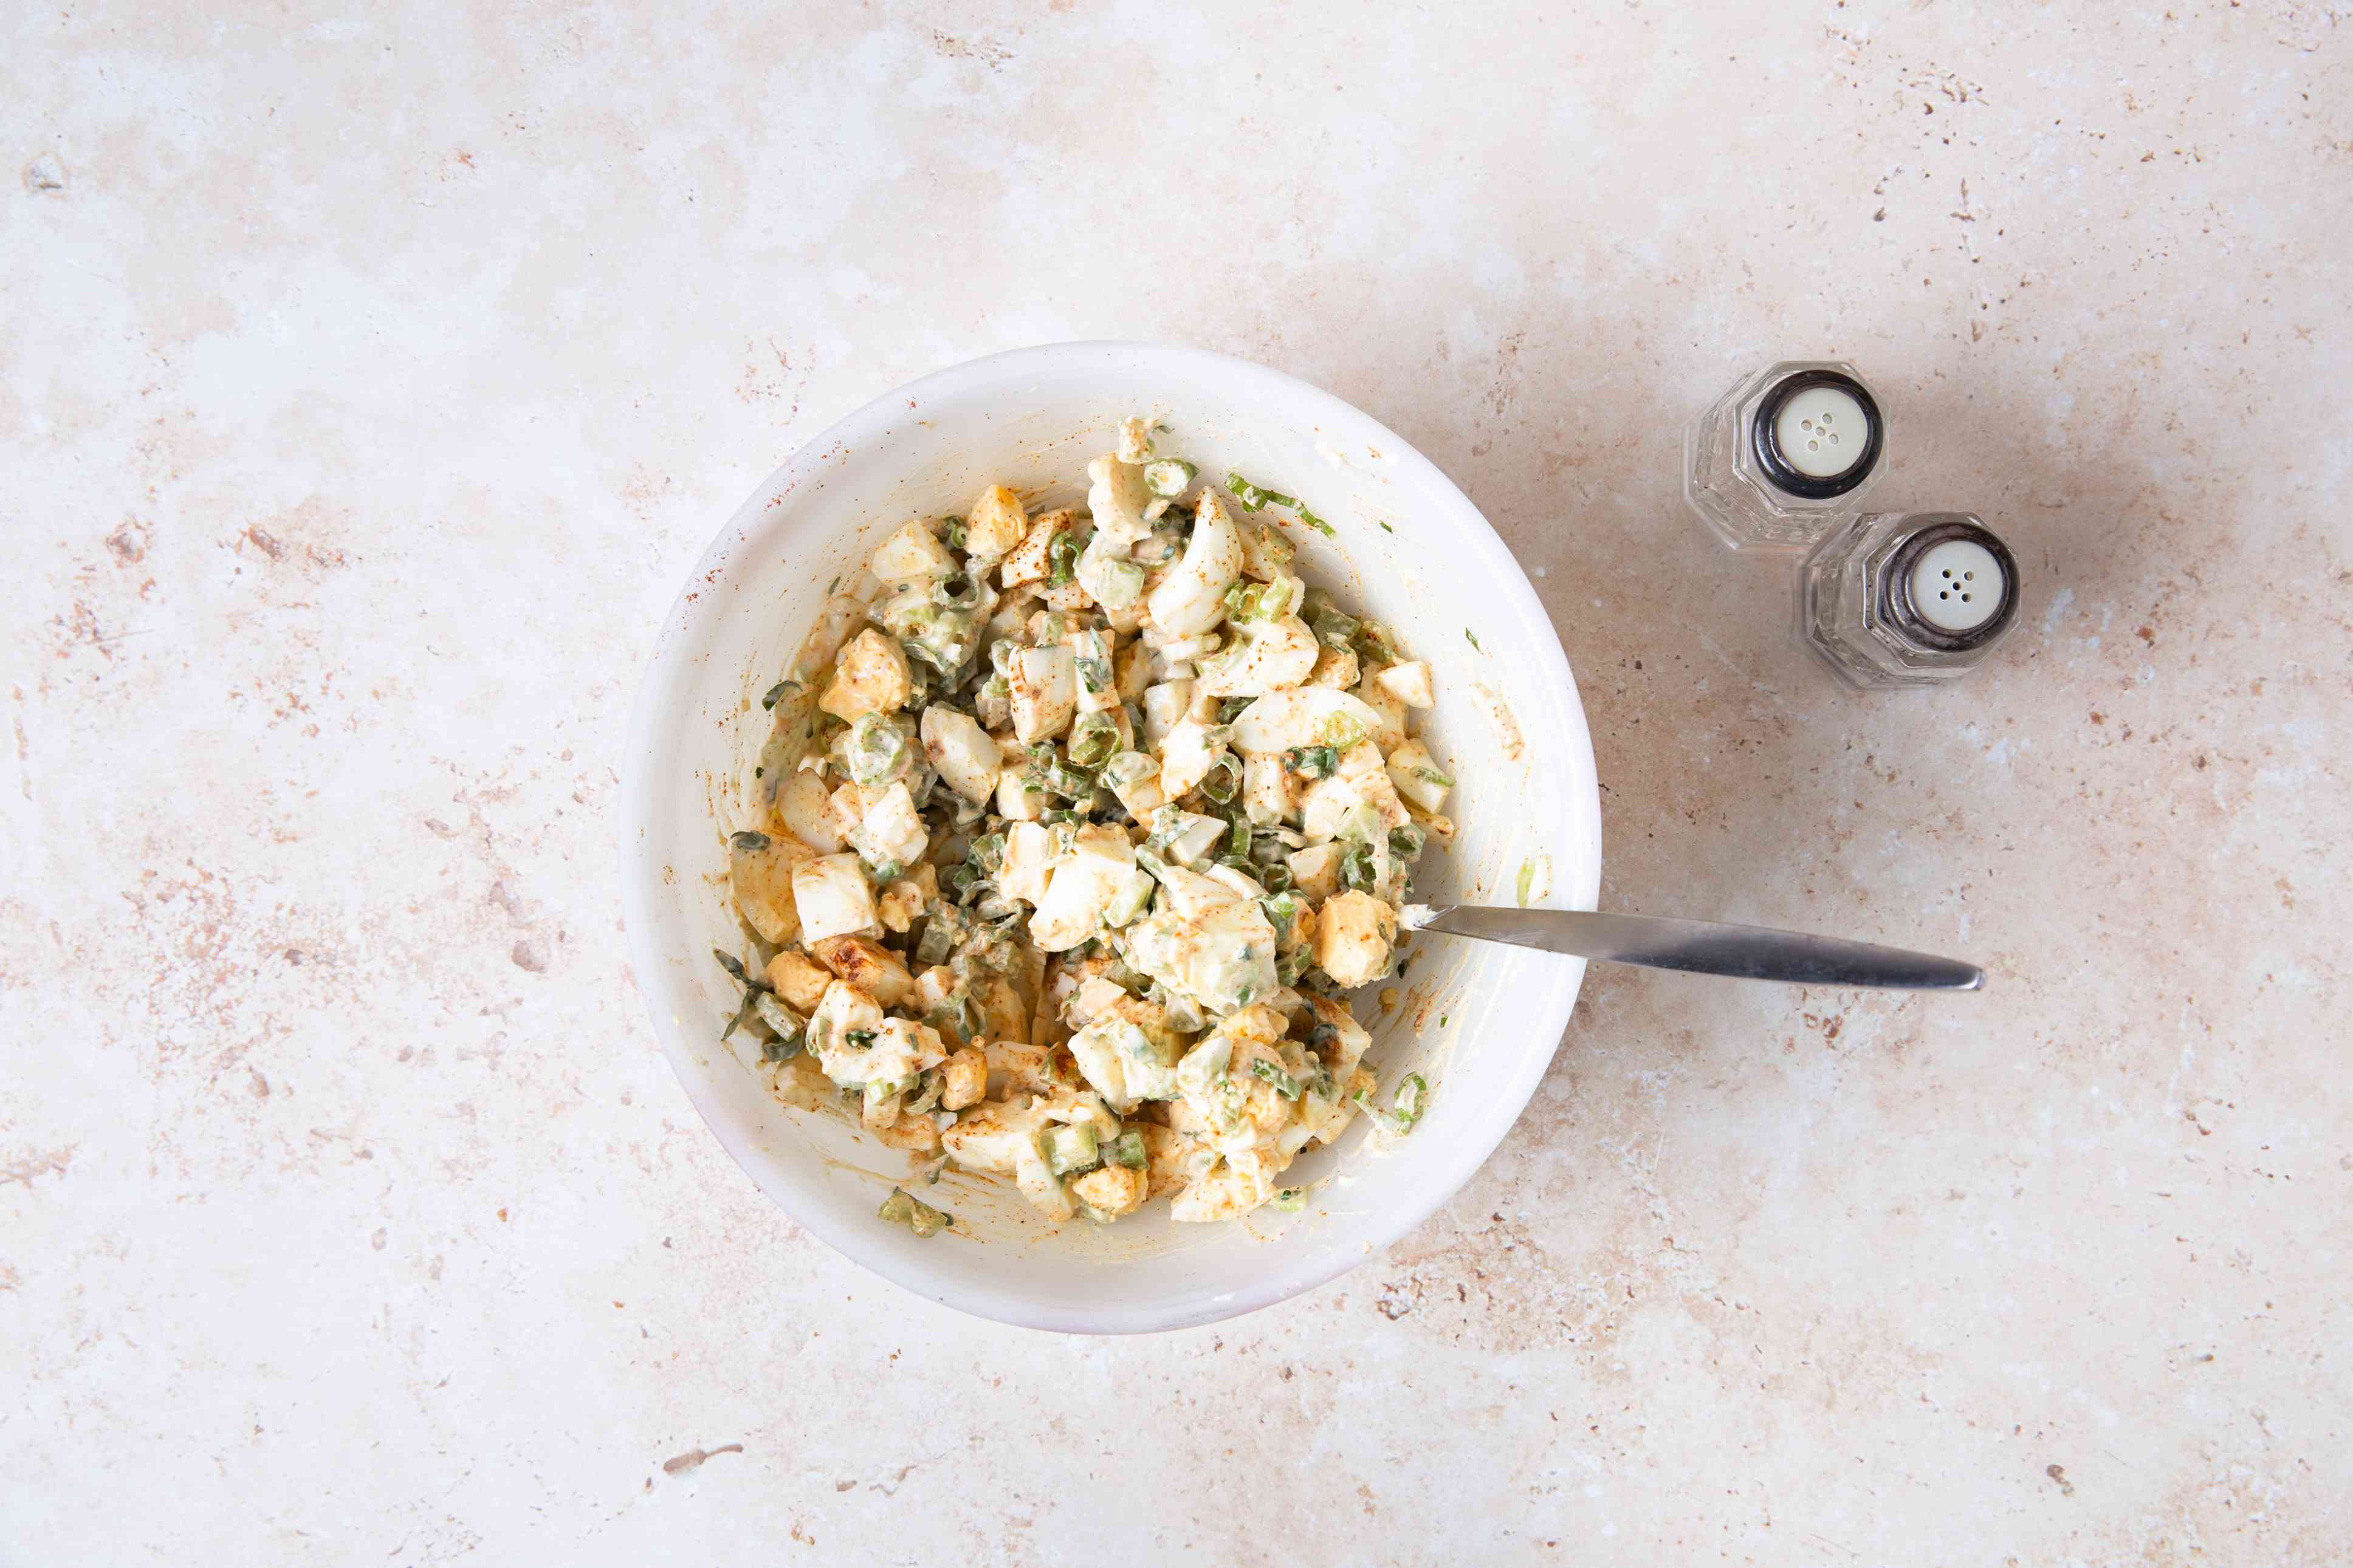 Creamy Egg Salad (Without Mayo) in a bowl